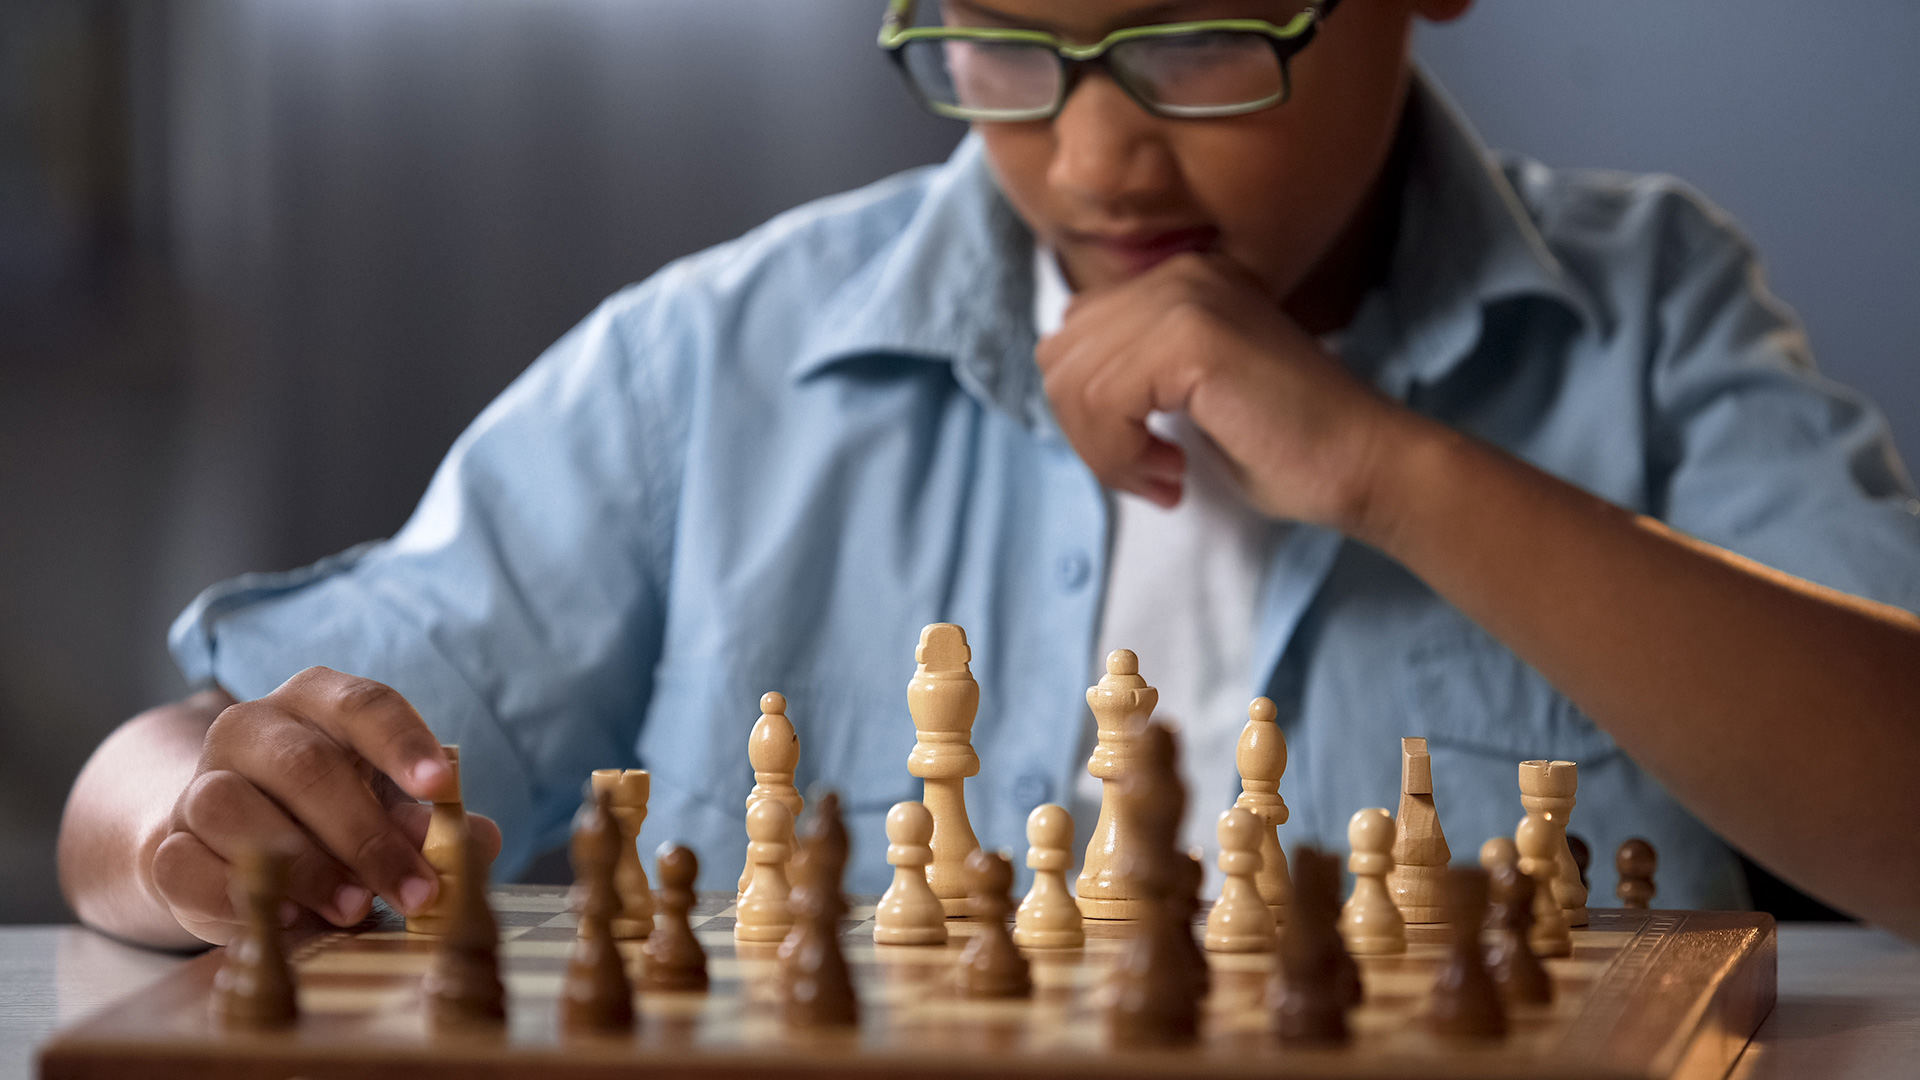 Detroit police nonprofit introduces chess to community youth